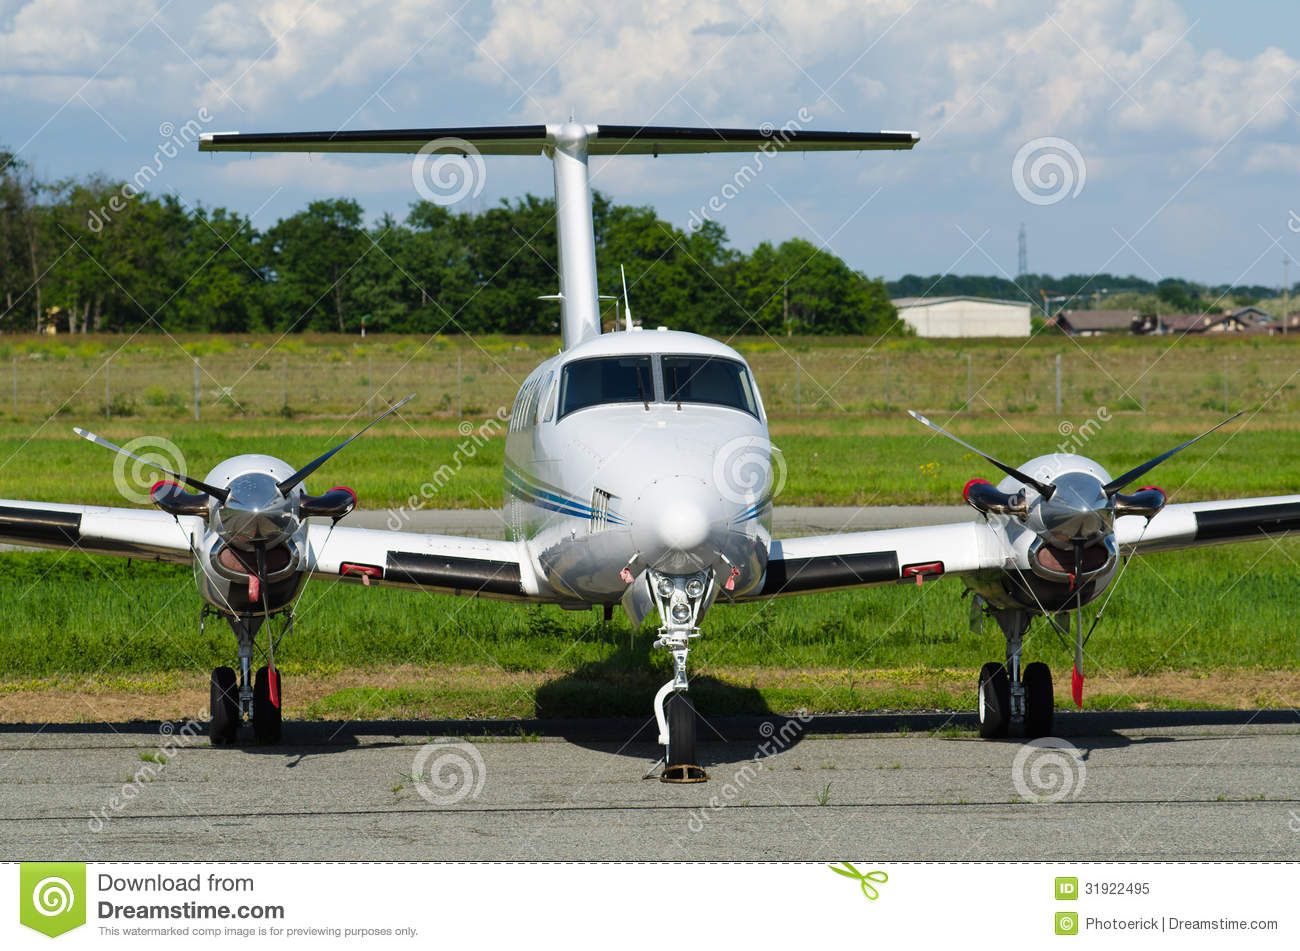 rc plane prices with Royalty Free Stock Photo Twin Engine Plane Propeller Aircraft Stationary Image31922495 on Royalty Free Stock Photo Twin Engine Plane Propeller Aircraft Stationary Image31922495 as well 280950871018 moreover 1969 Mclaren M6 Gt further Rc Plan besides Royalty Free Stock Photo Boeing B World War Ii Era American Bomber Lexington Ky Usa July Display Aviation Museum Kentucky Lexington Image33262425.